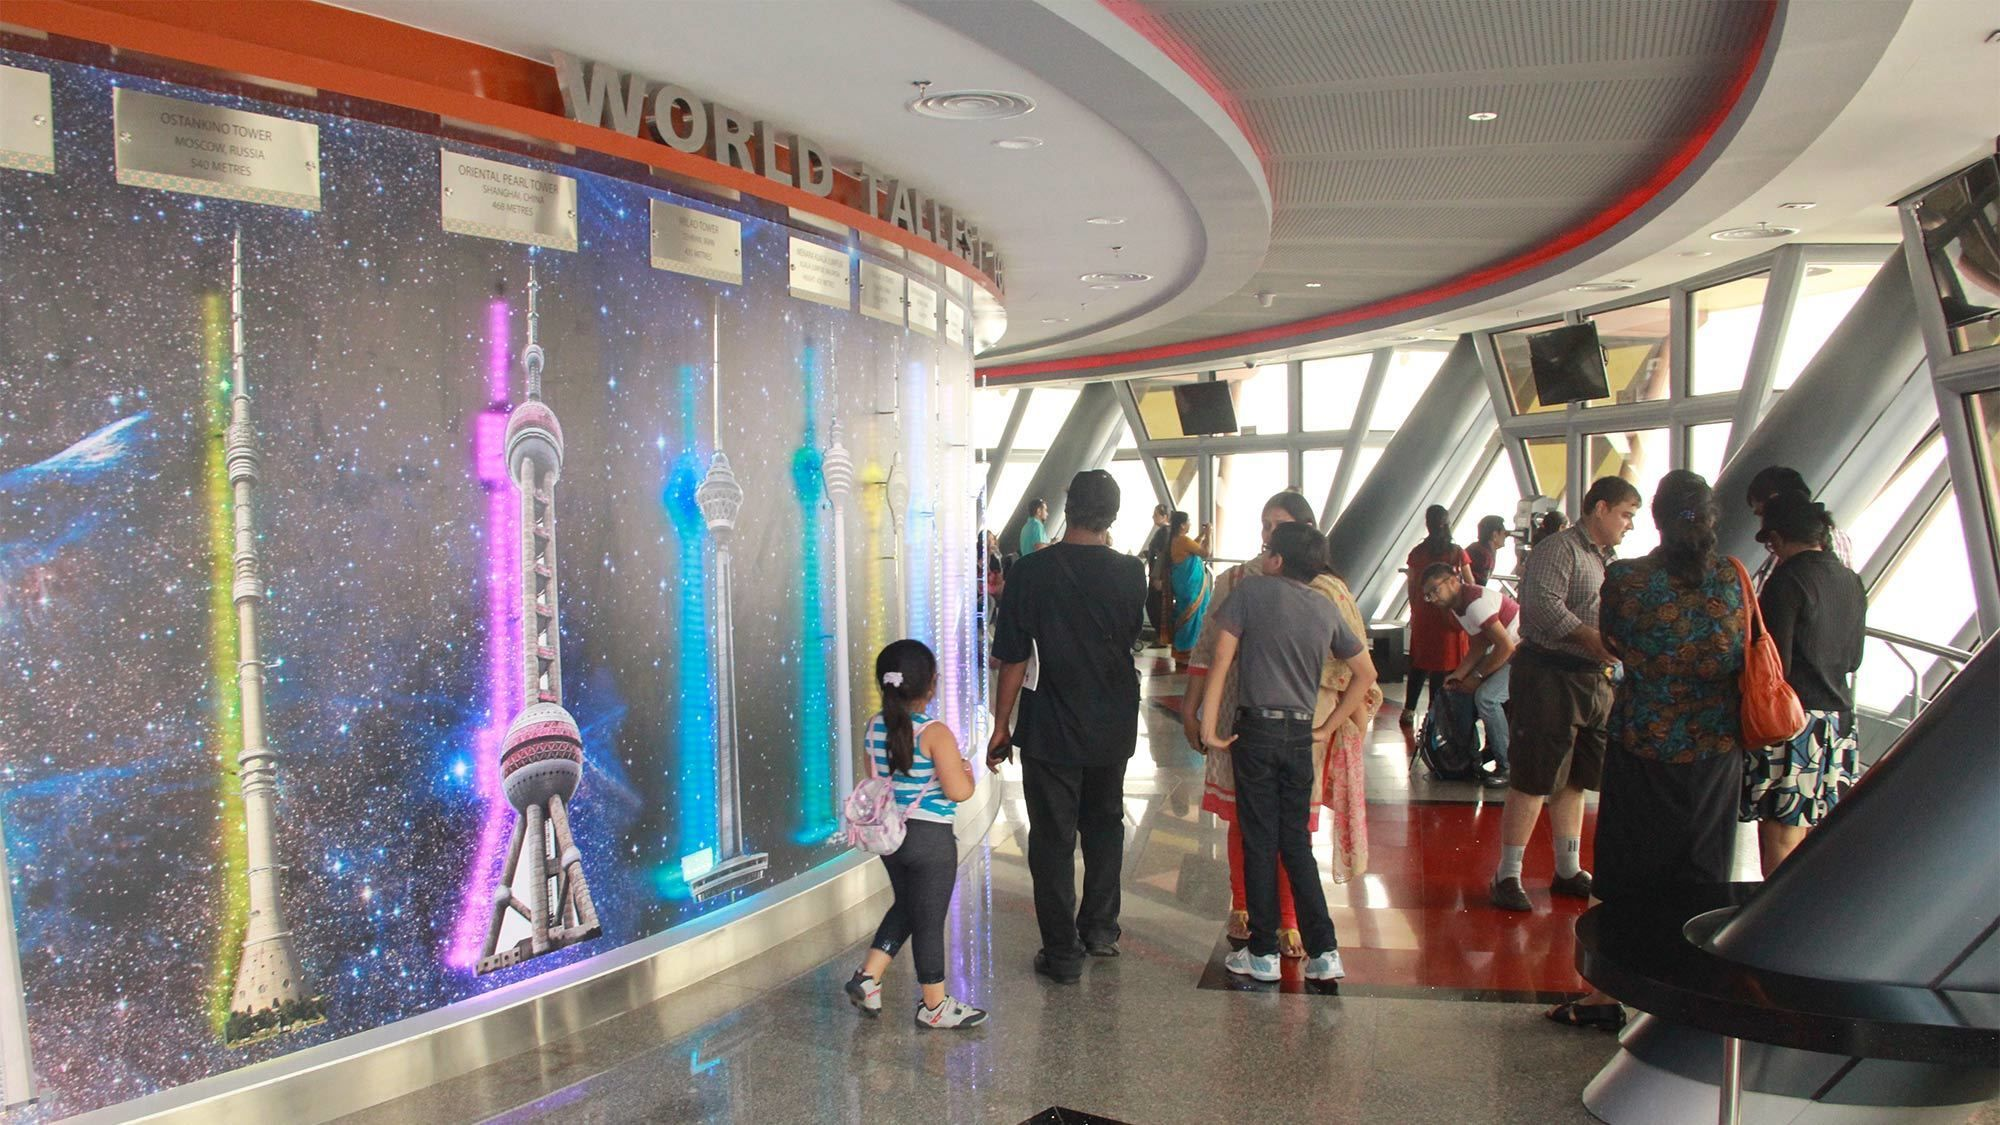 The infographic of the world's tallest towers in KL Tower Observatory Deck tour